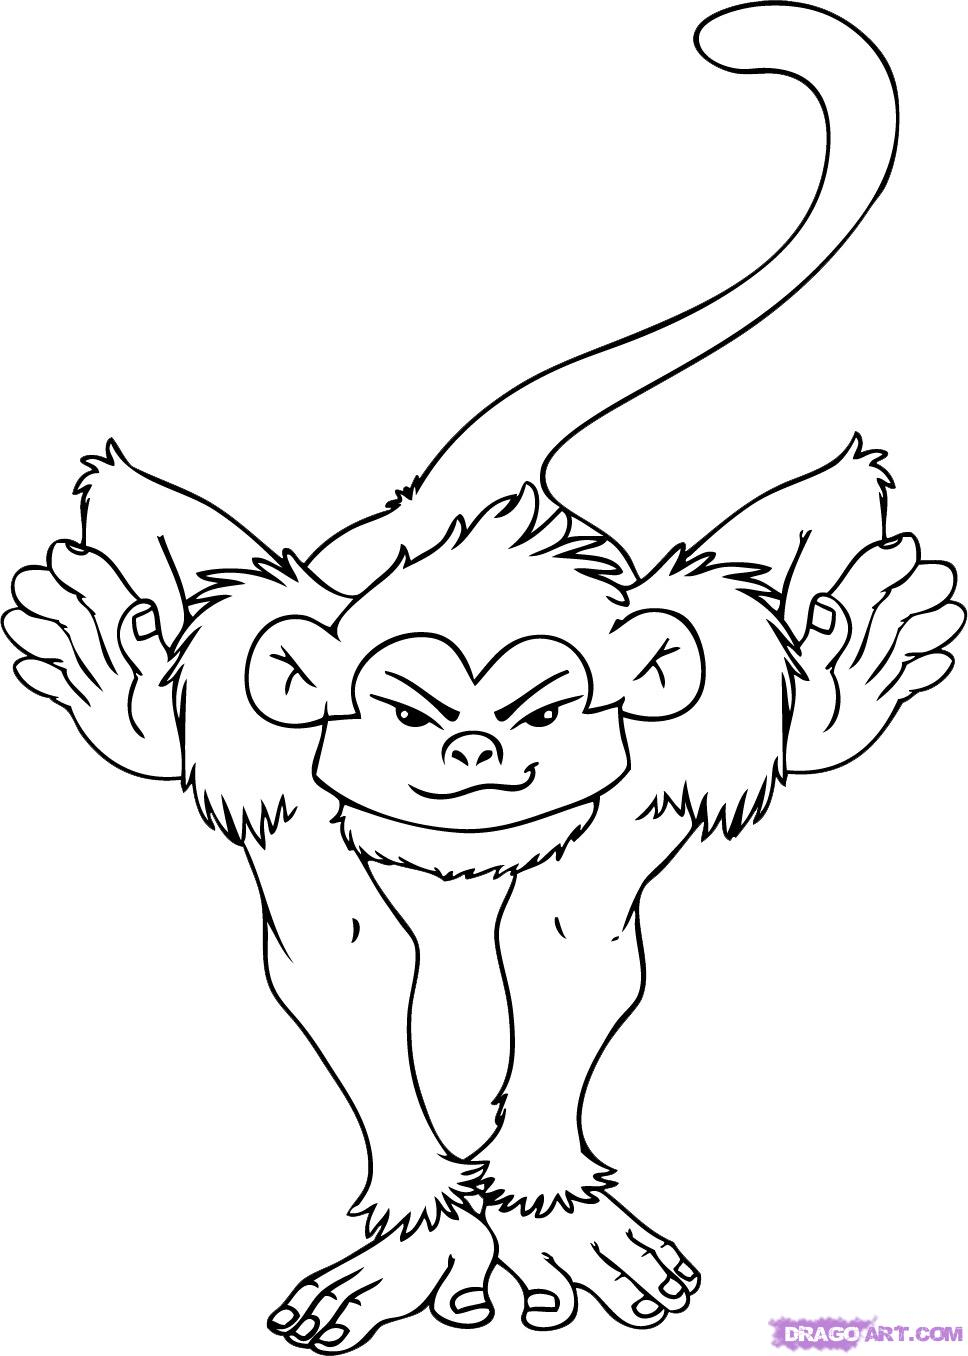 Monkey Picture Drawing